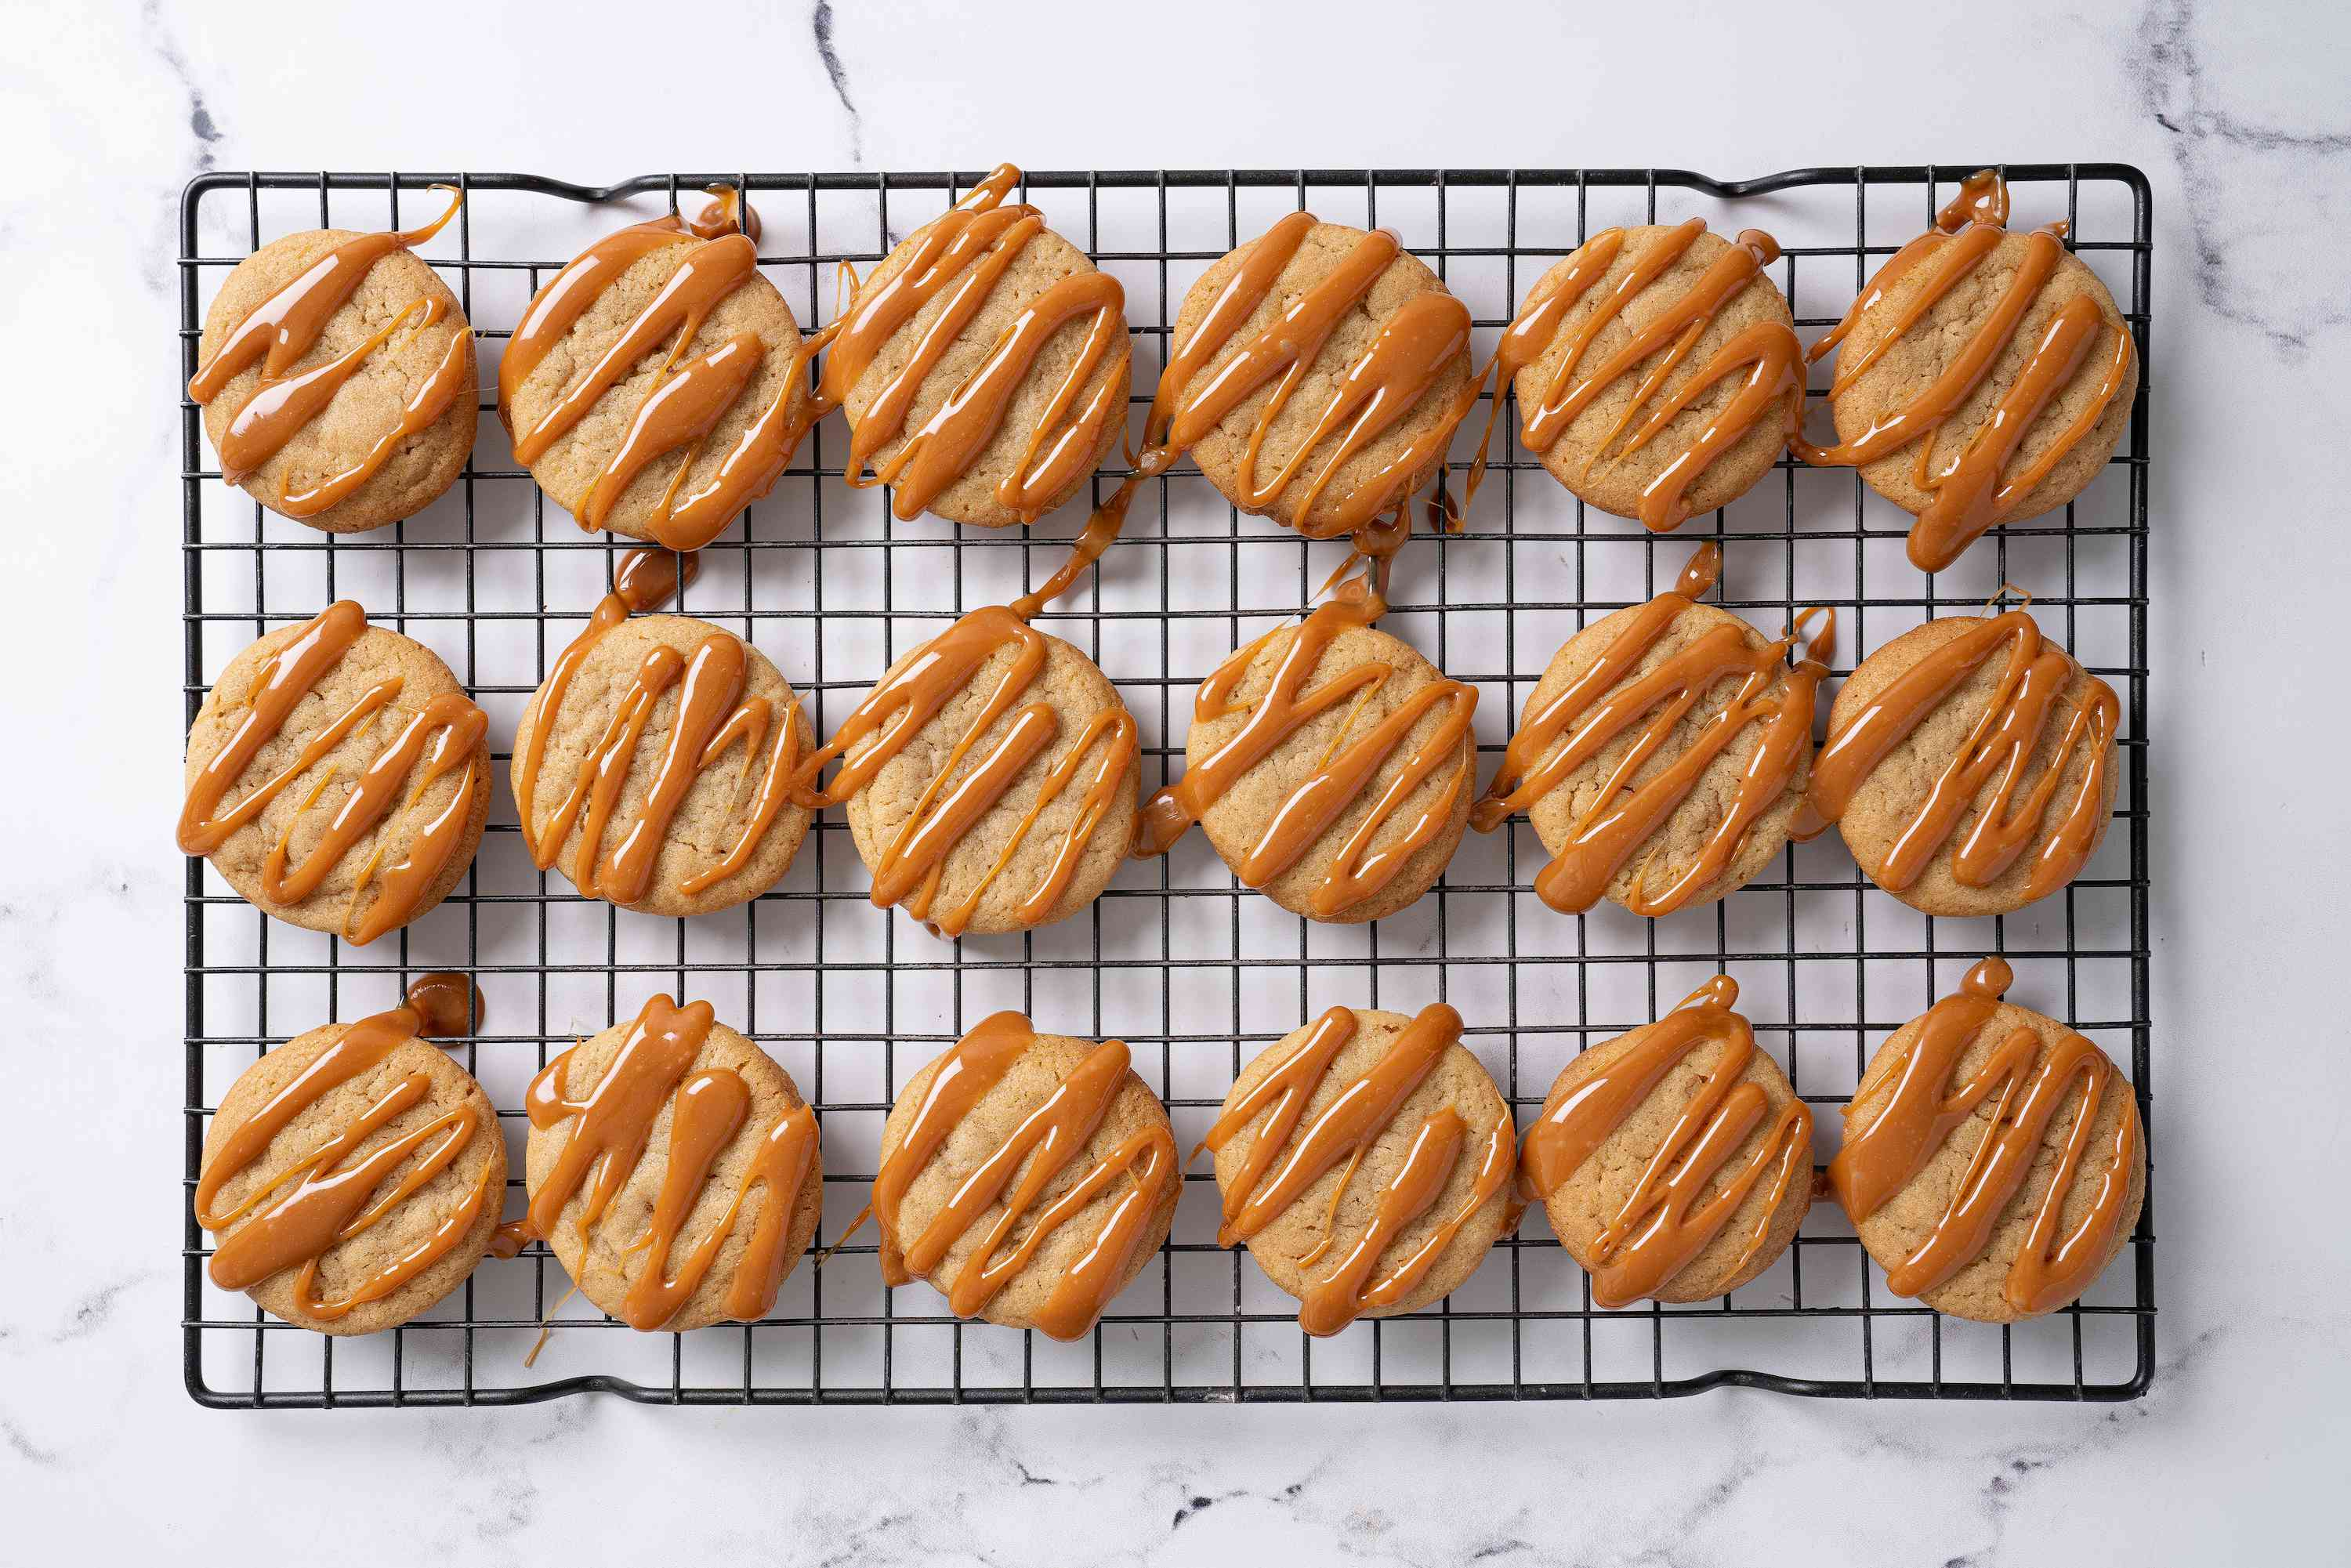 Salted caramel cookies drizzled with caramel